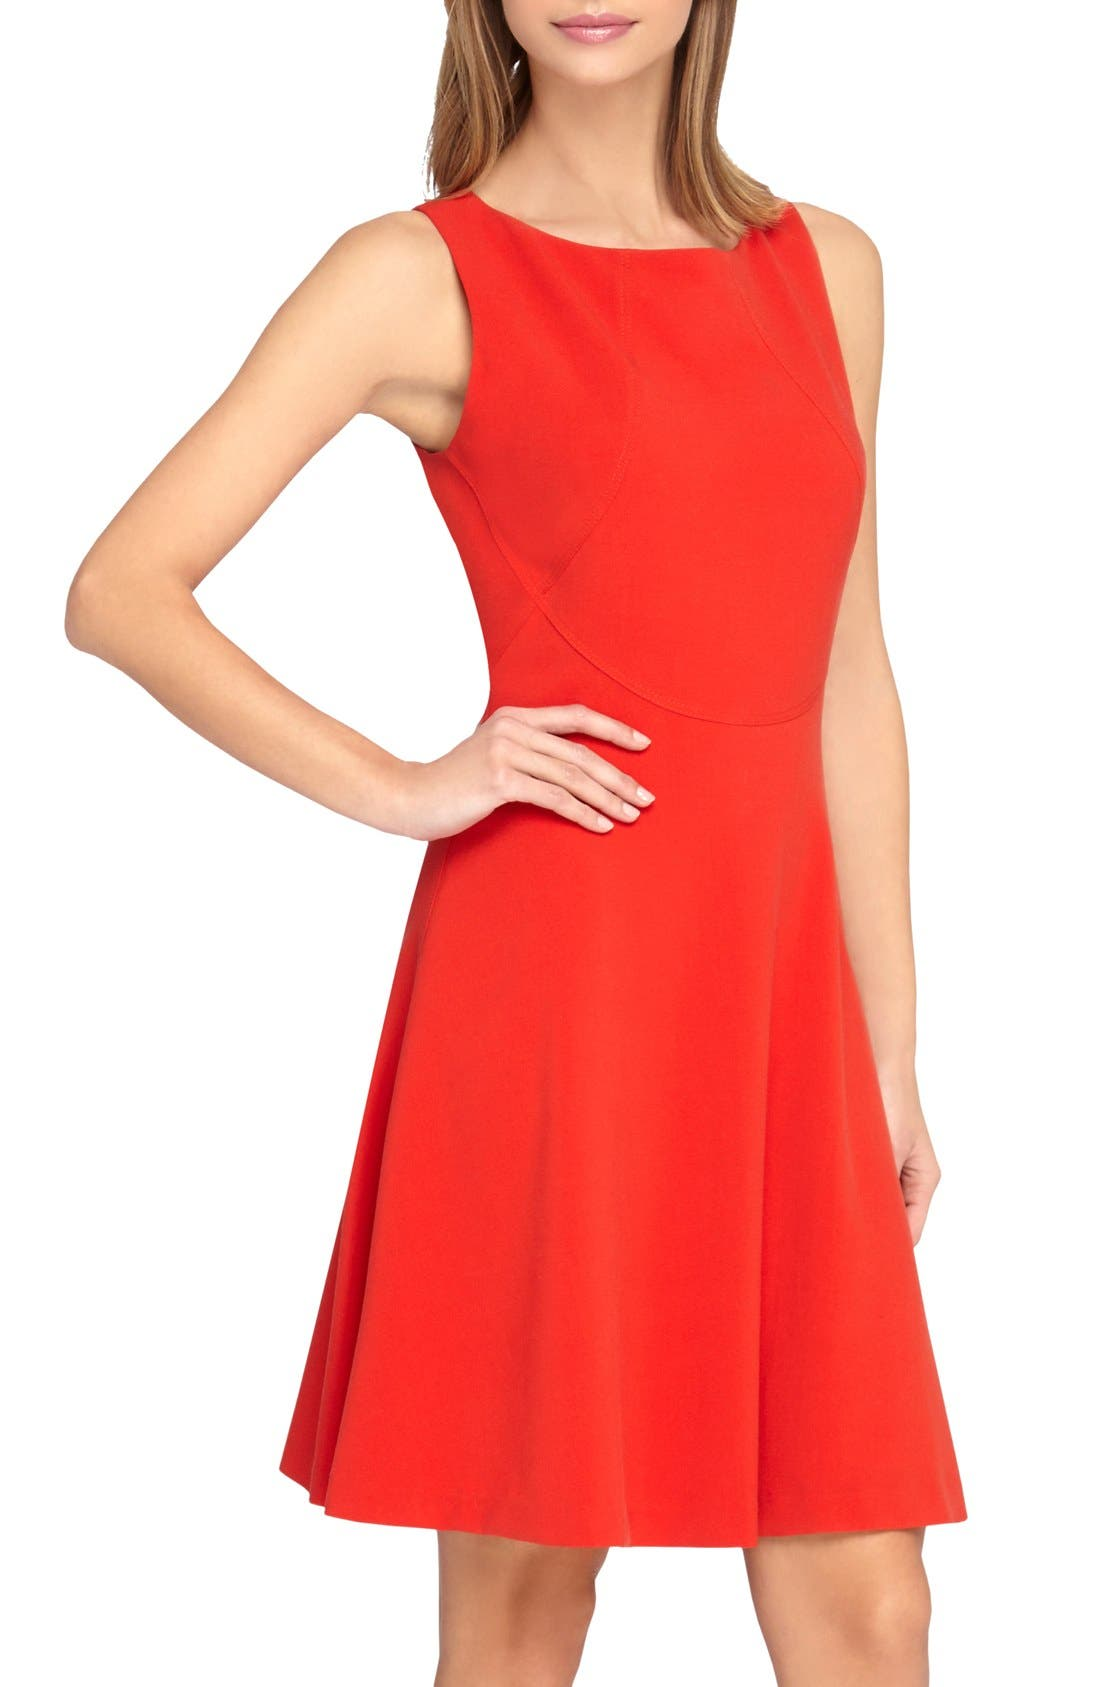 Alternate Image 1 Selected - Tahari Seamed Knit Fit & Flare Dress